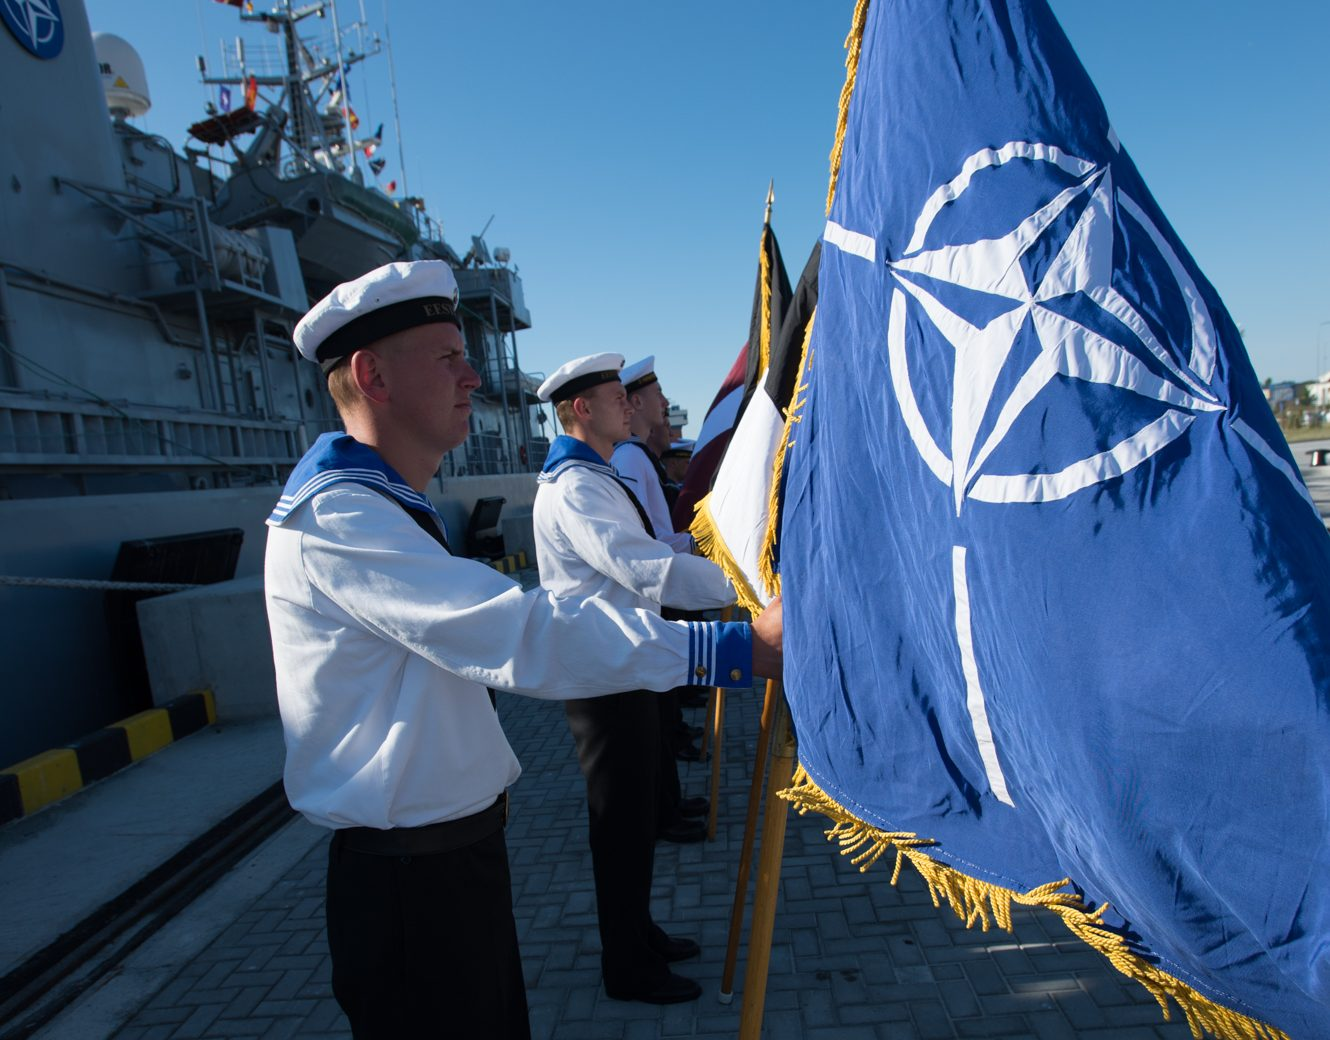 Four Challenges For NATO 2030